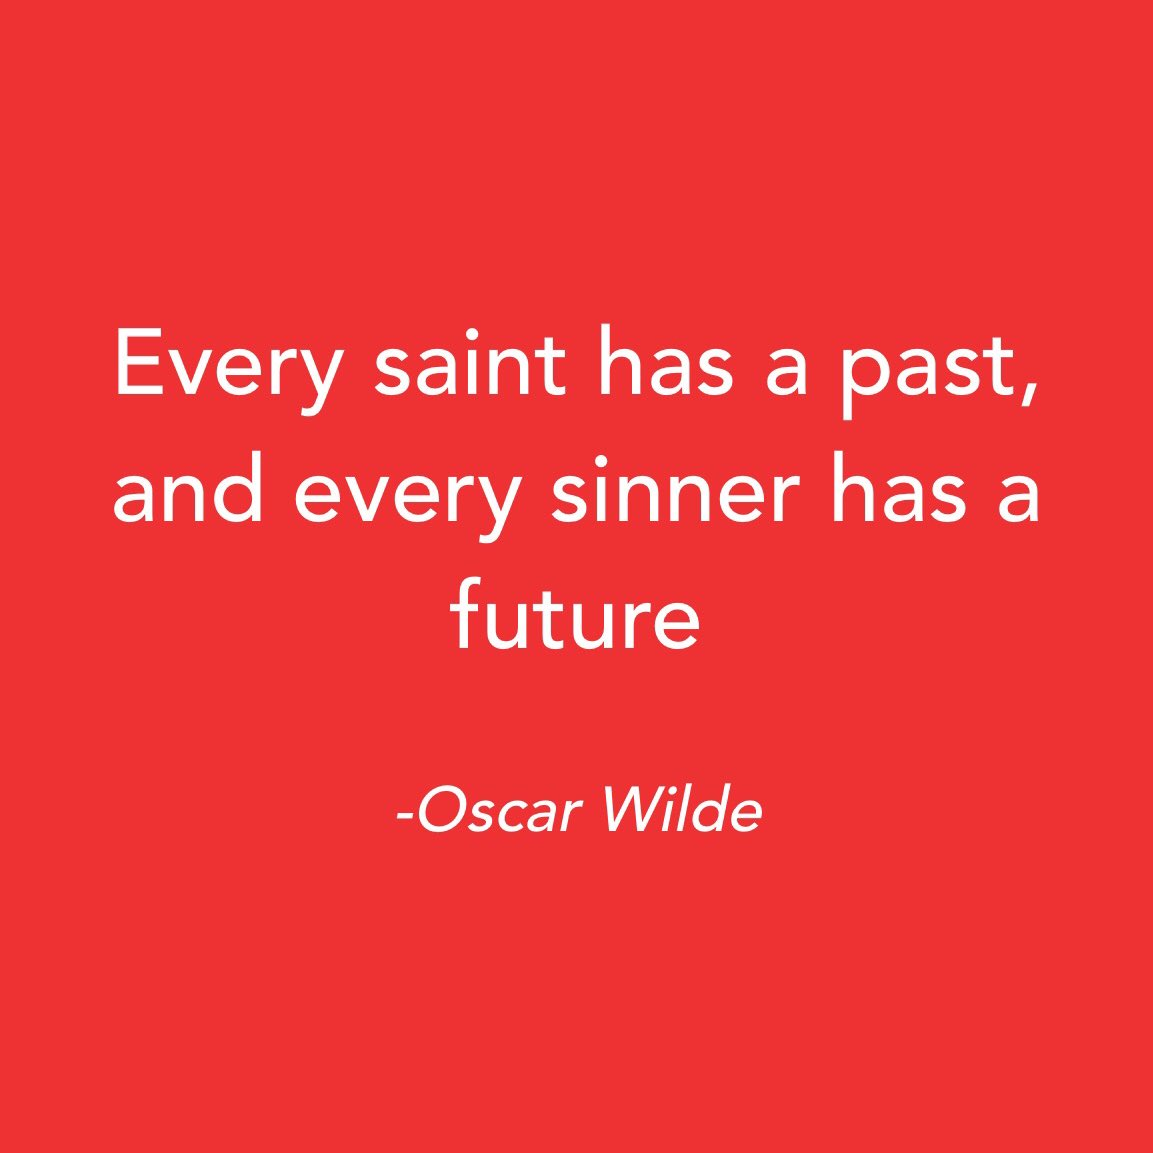 """""""Every Saint has a past, and every sinner has a future. """" Oscar Wilde  #motto #mottooftheday #quite #quotes #mentalhealth #quoteoftheday #quotestagram #quotesoftheday #quotesdaily #oscarwilde"""